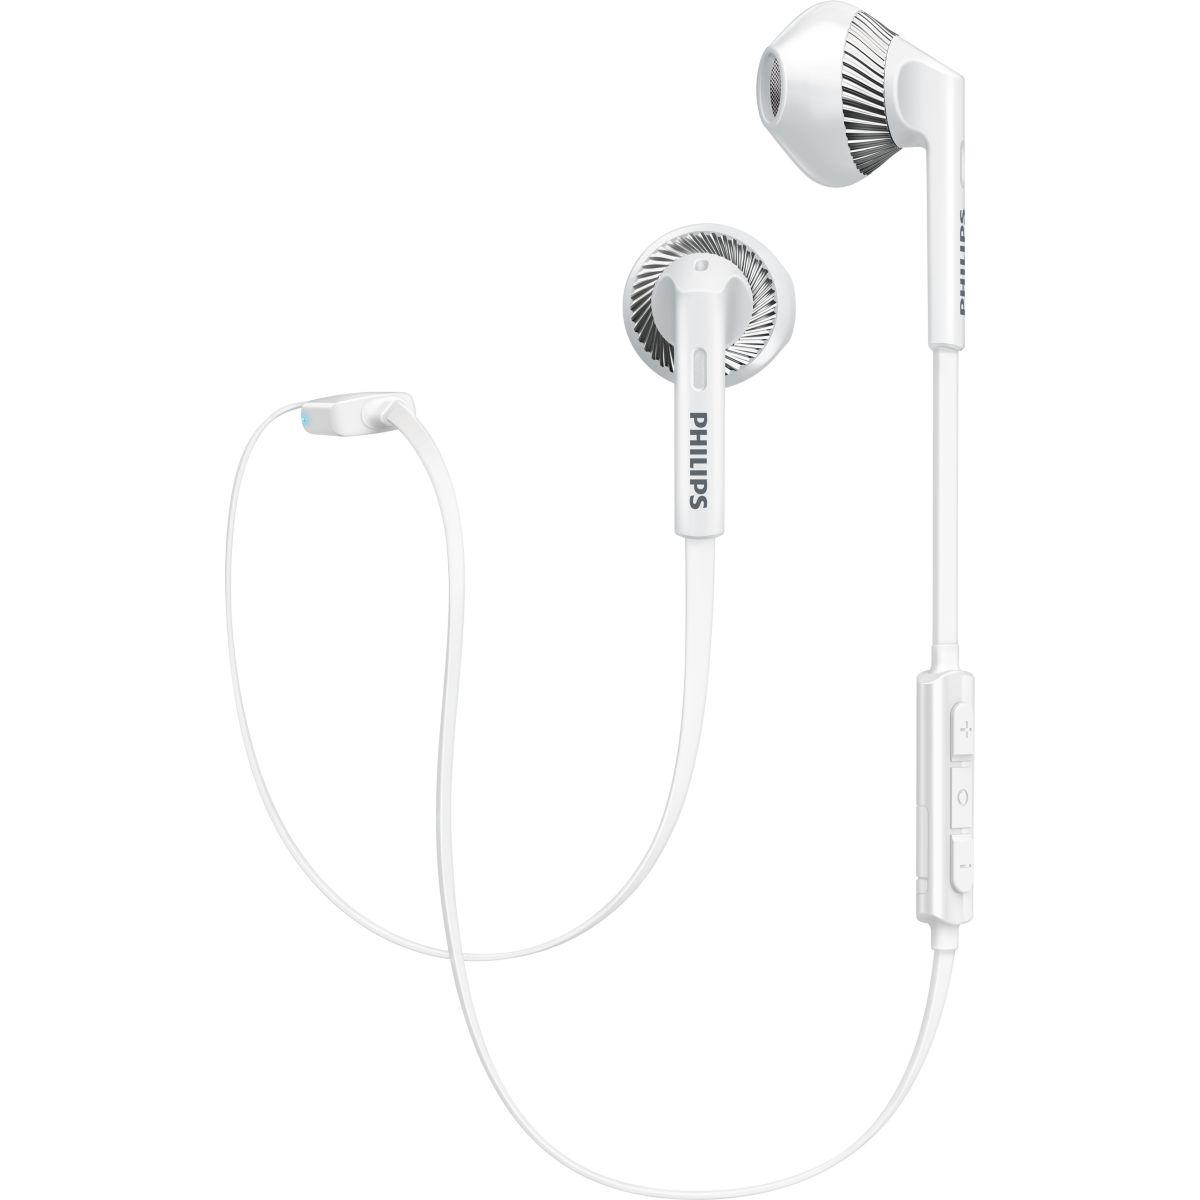 Casque bluetooth philips shb5250 blanc - livraison offerte : code liv (photo)